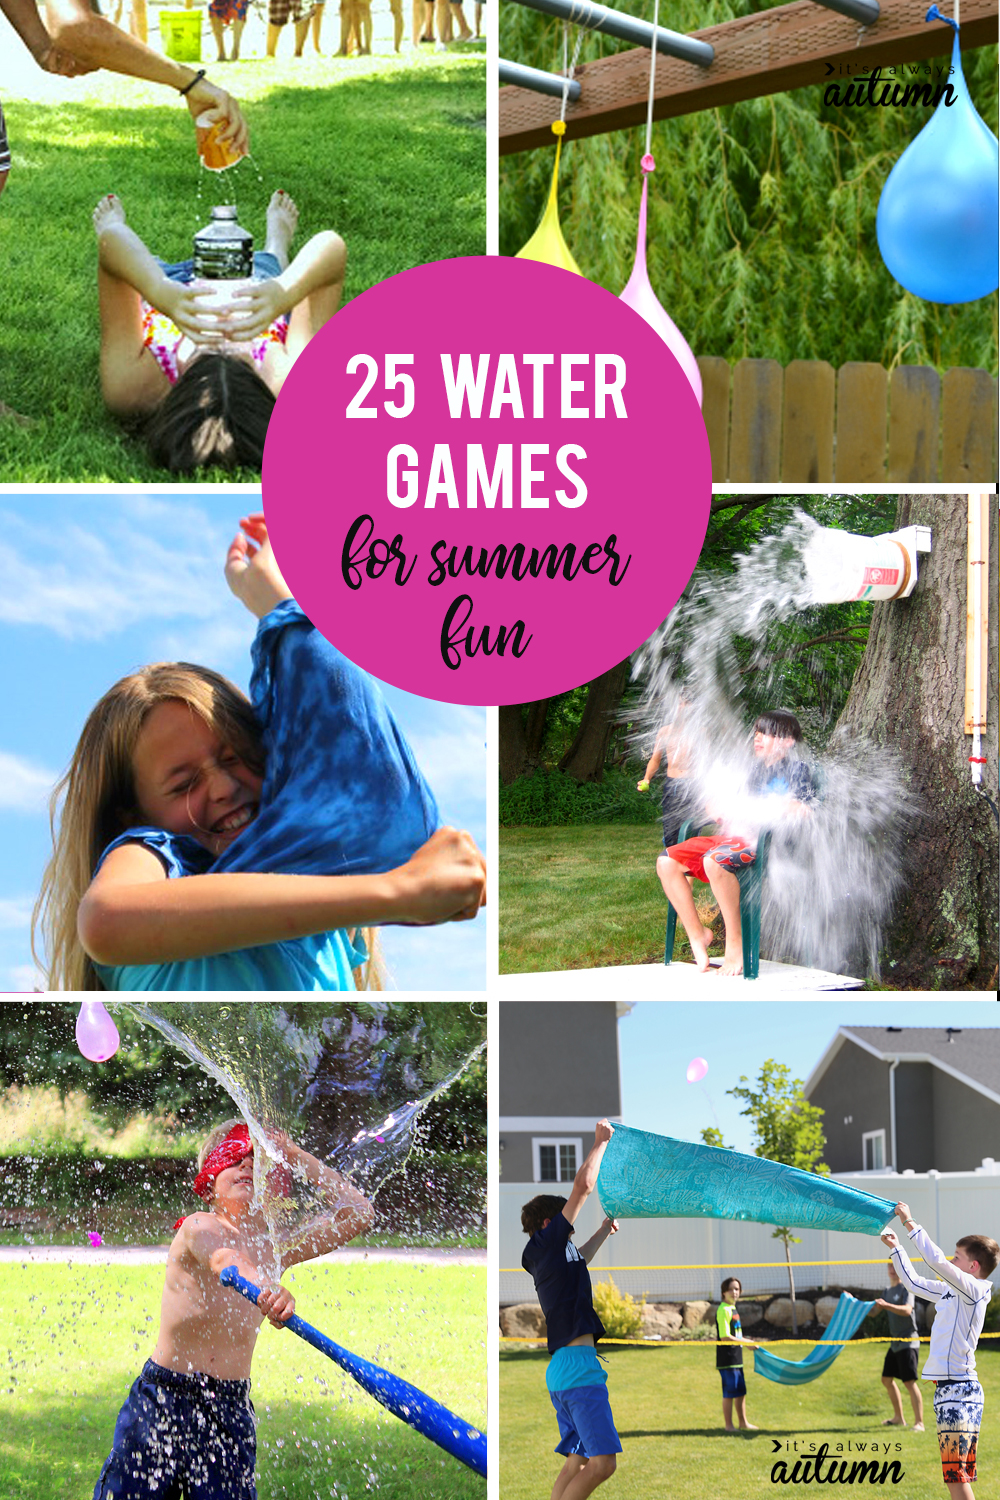 25 water games for tons of fun this summer! Perfect for parties, family reunions, VBS, and more.